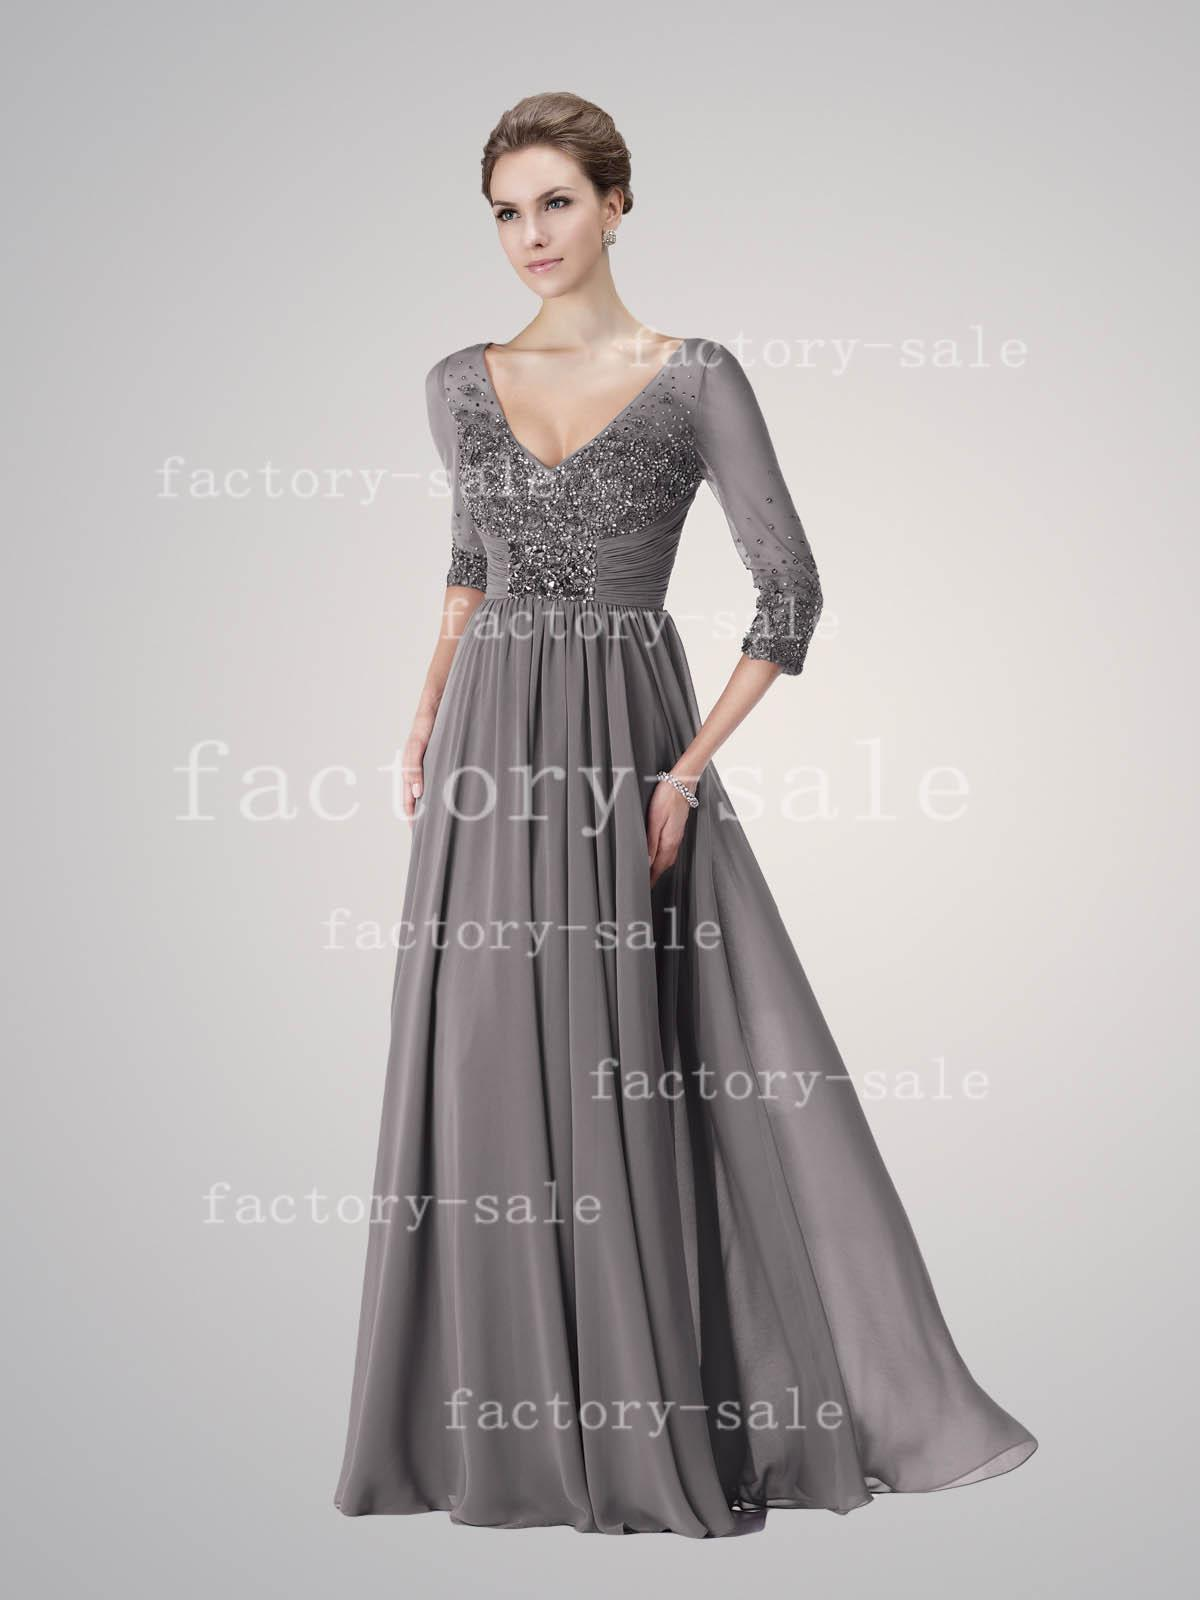 Elegant Evening Gowns Mother of the Bride Nordstrom – fashion dresses